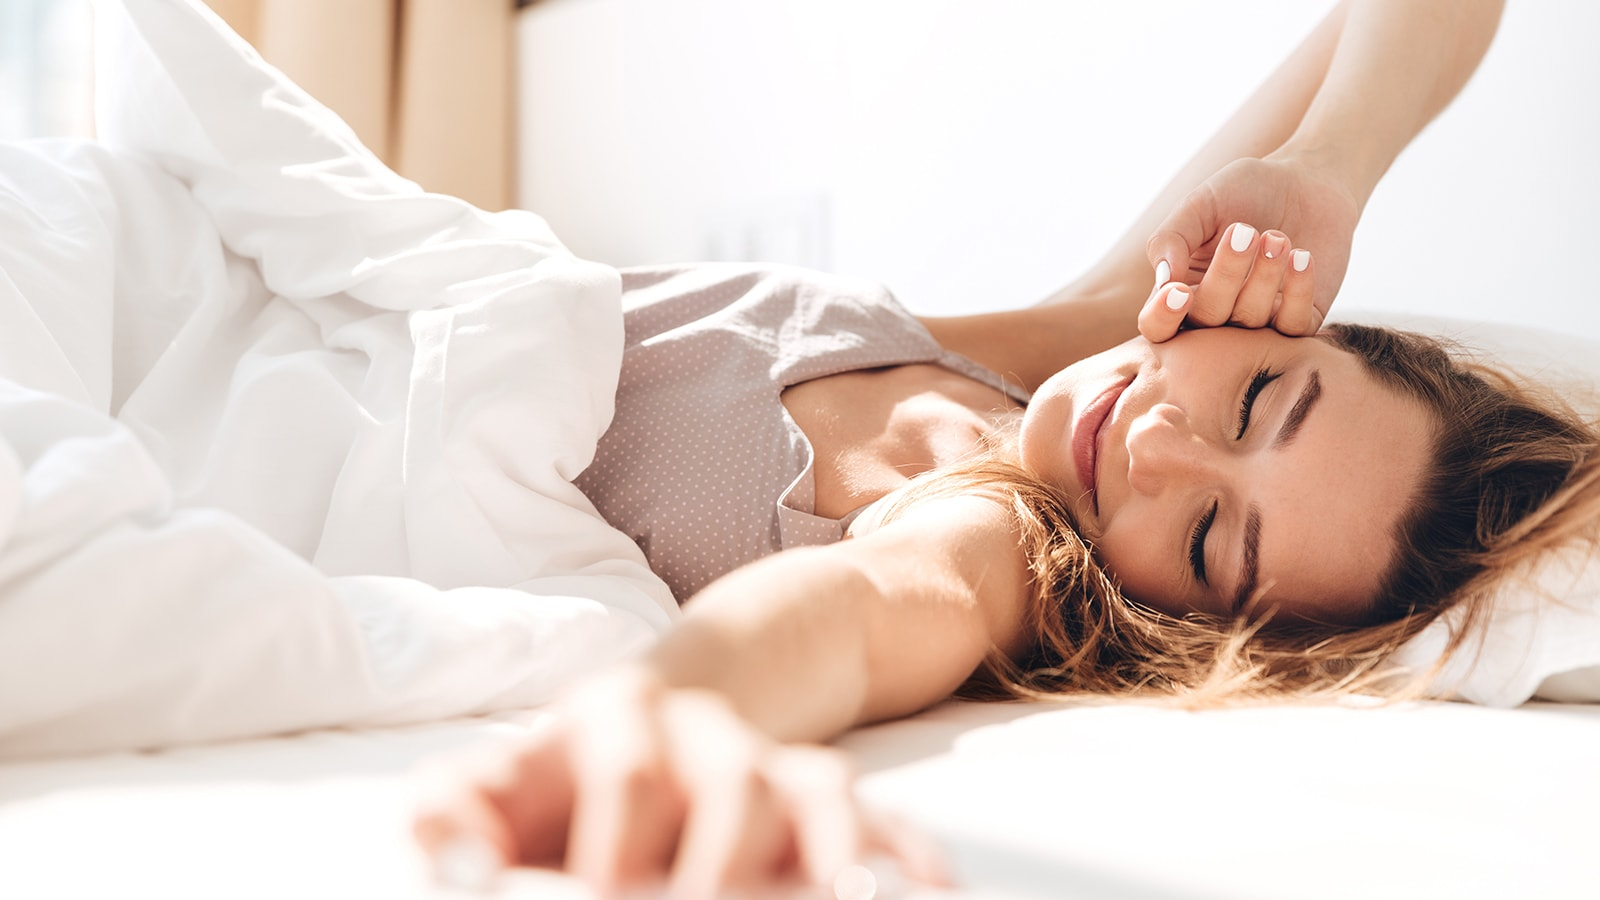 Scientists Explain 8 Things That Help You Wake Up Happy Every Morning